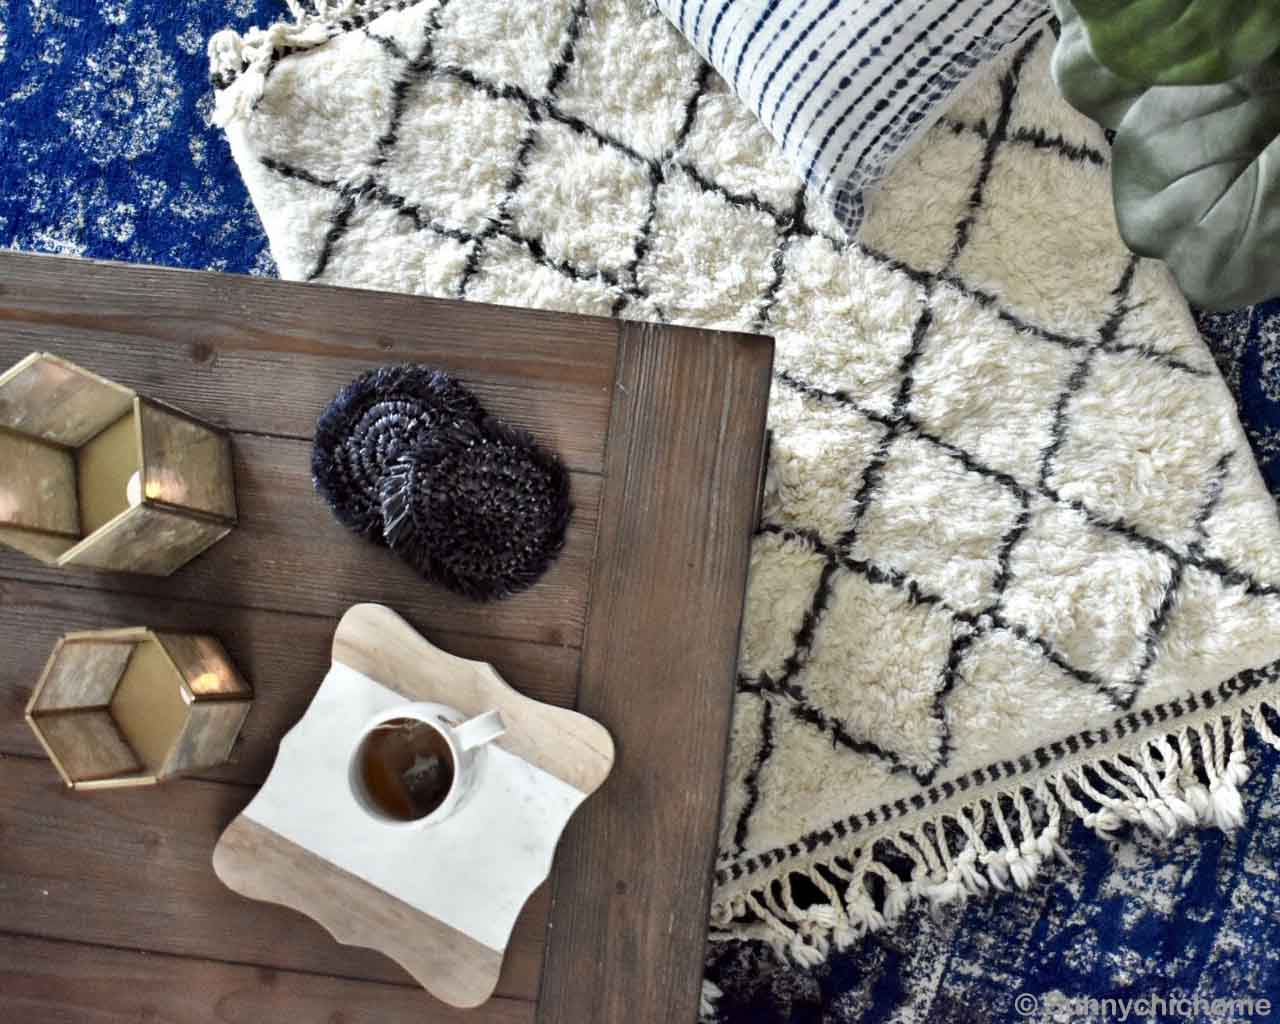 multiple decoration items on wooden table made by moroccan rugs